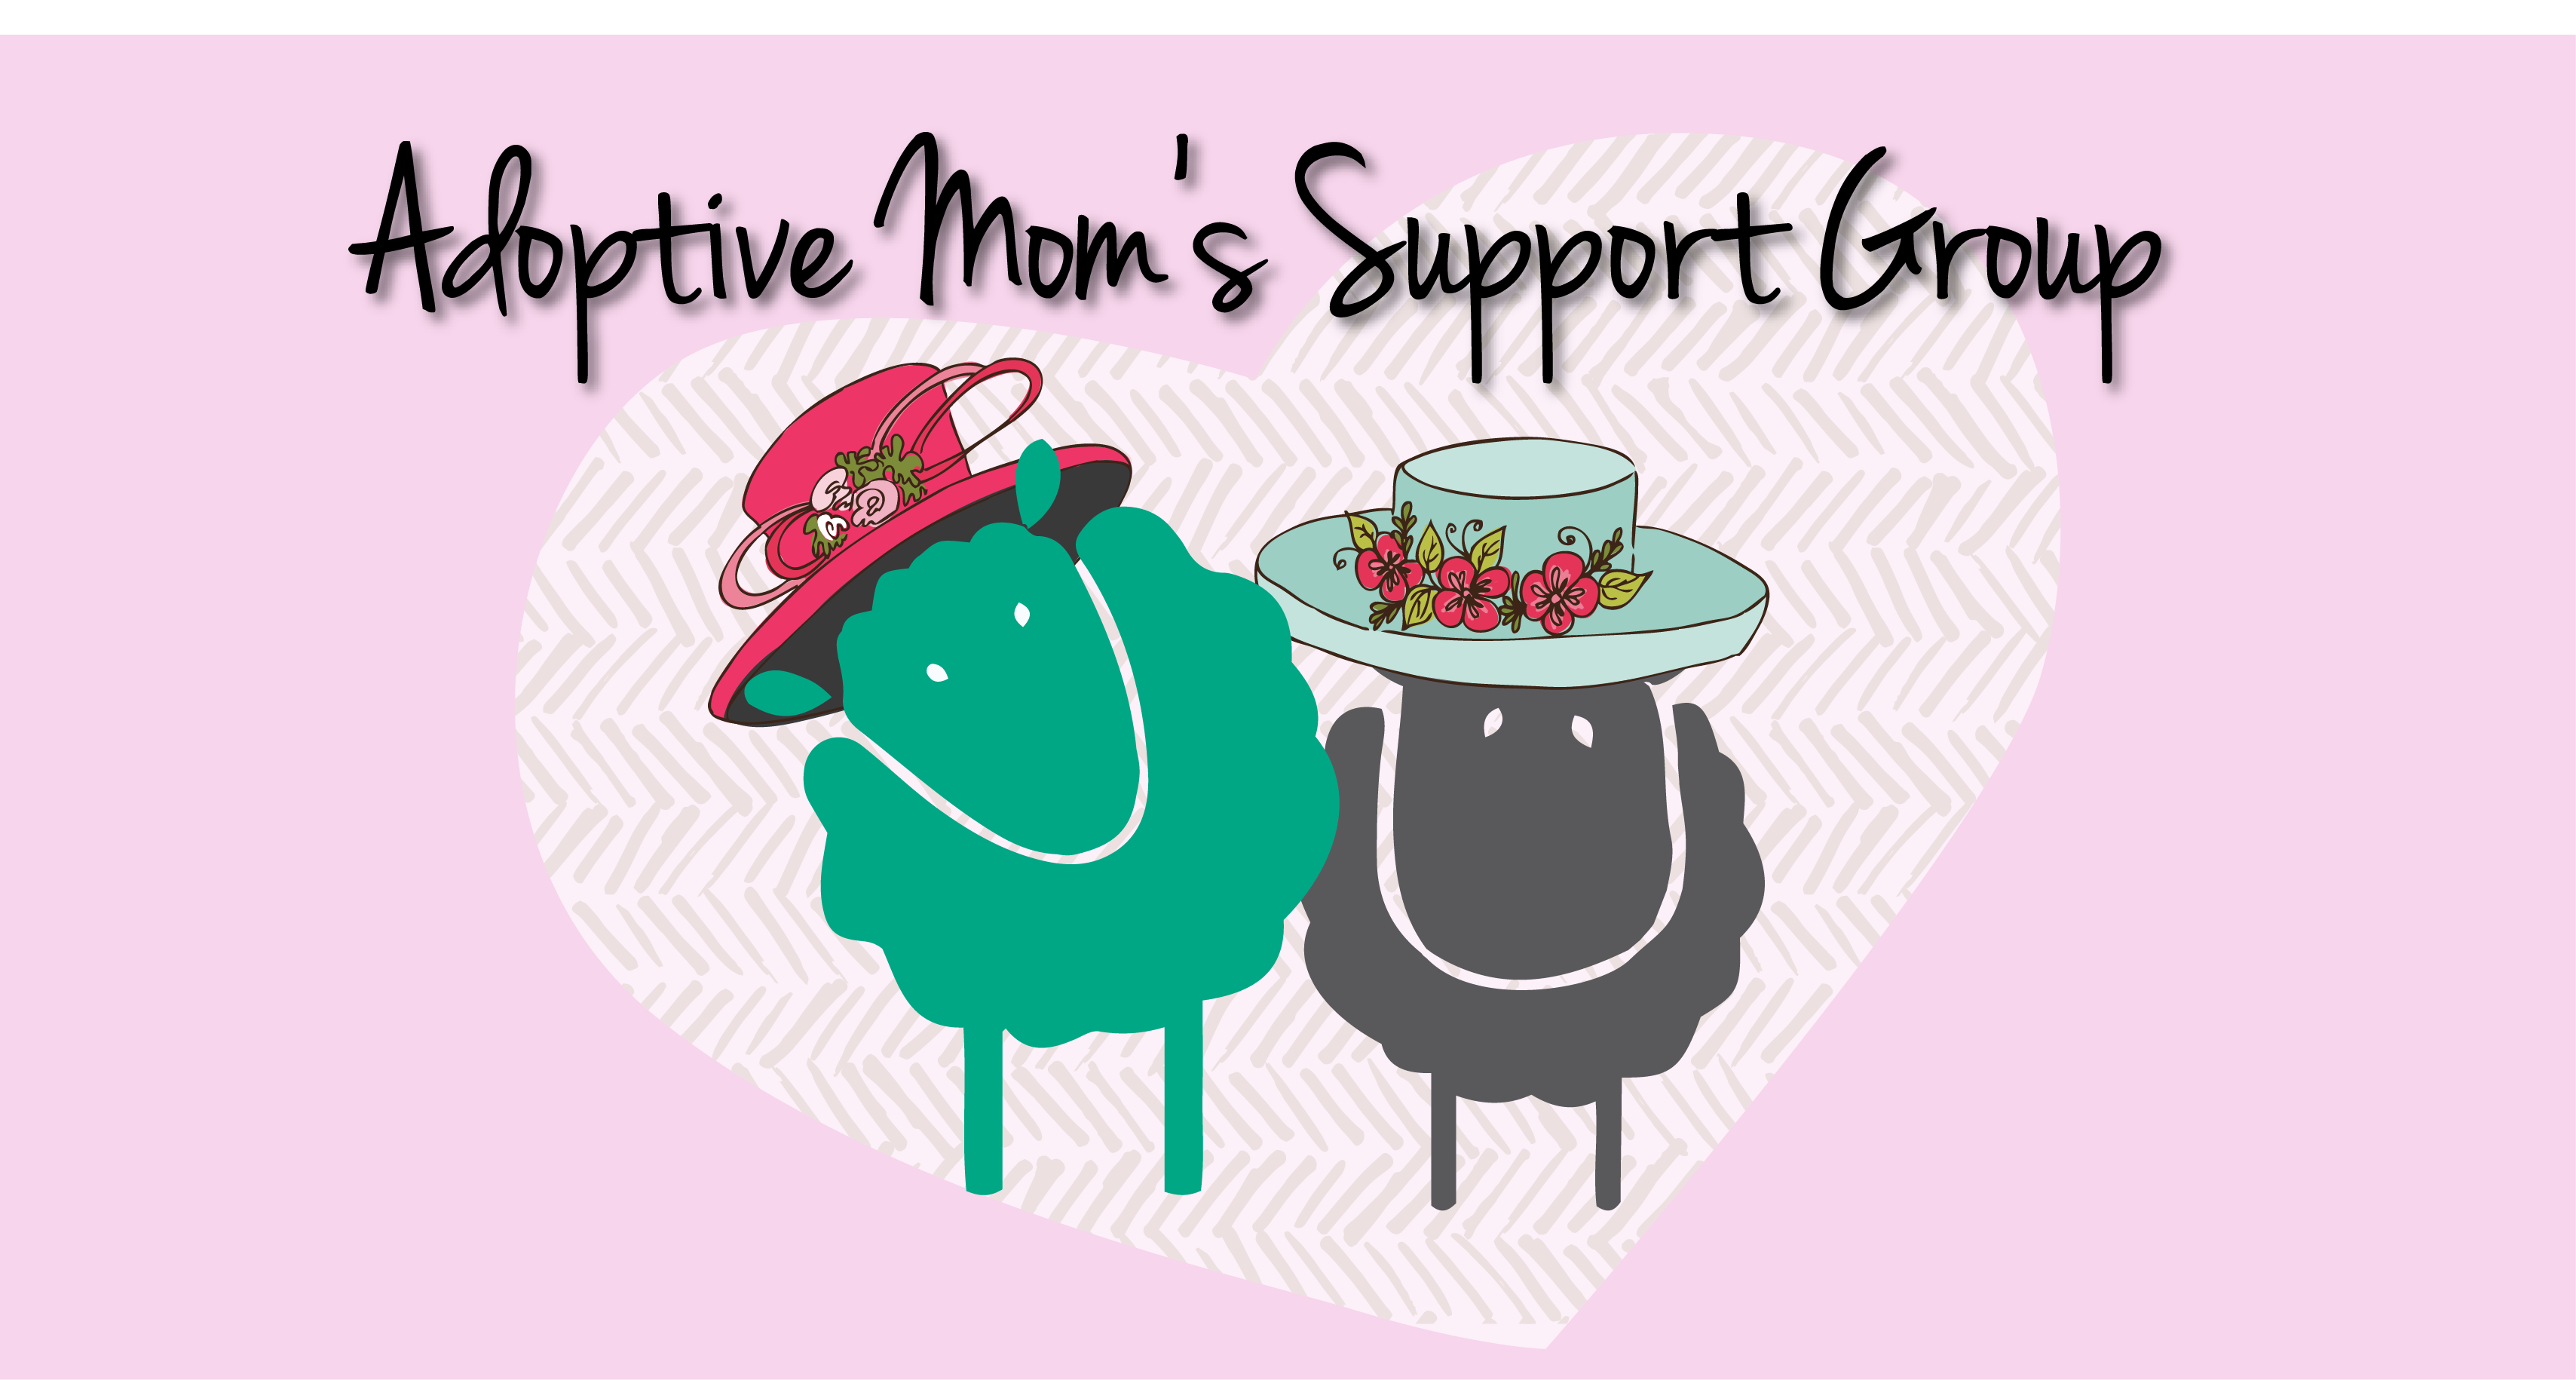 Adoptive Moms Support Group